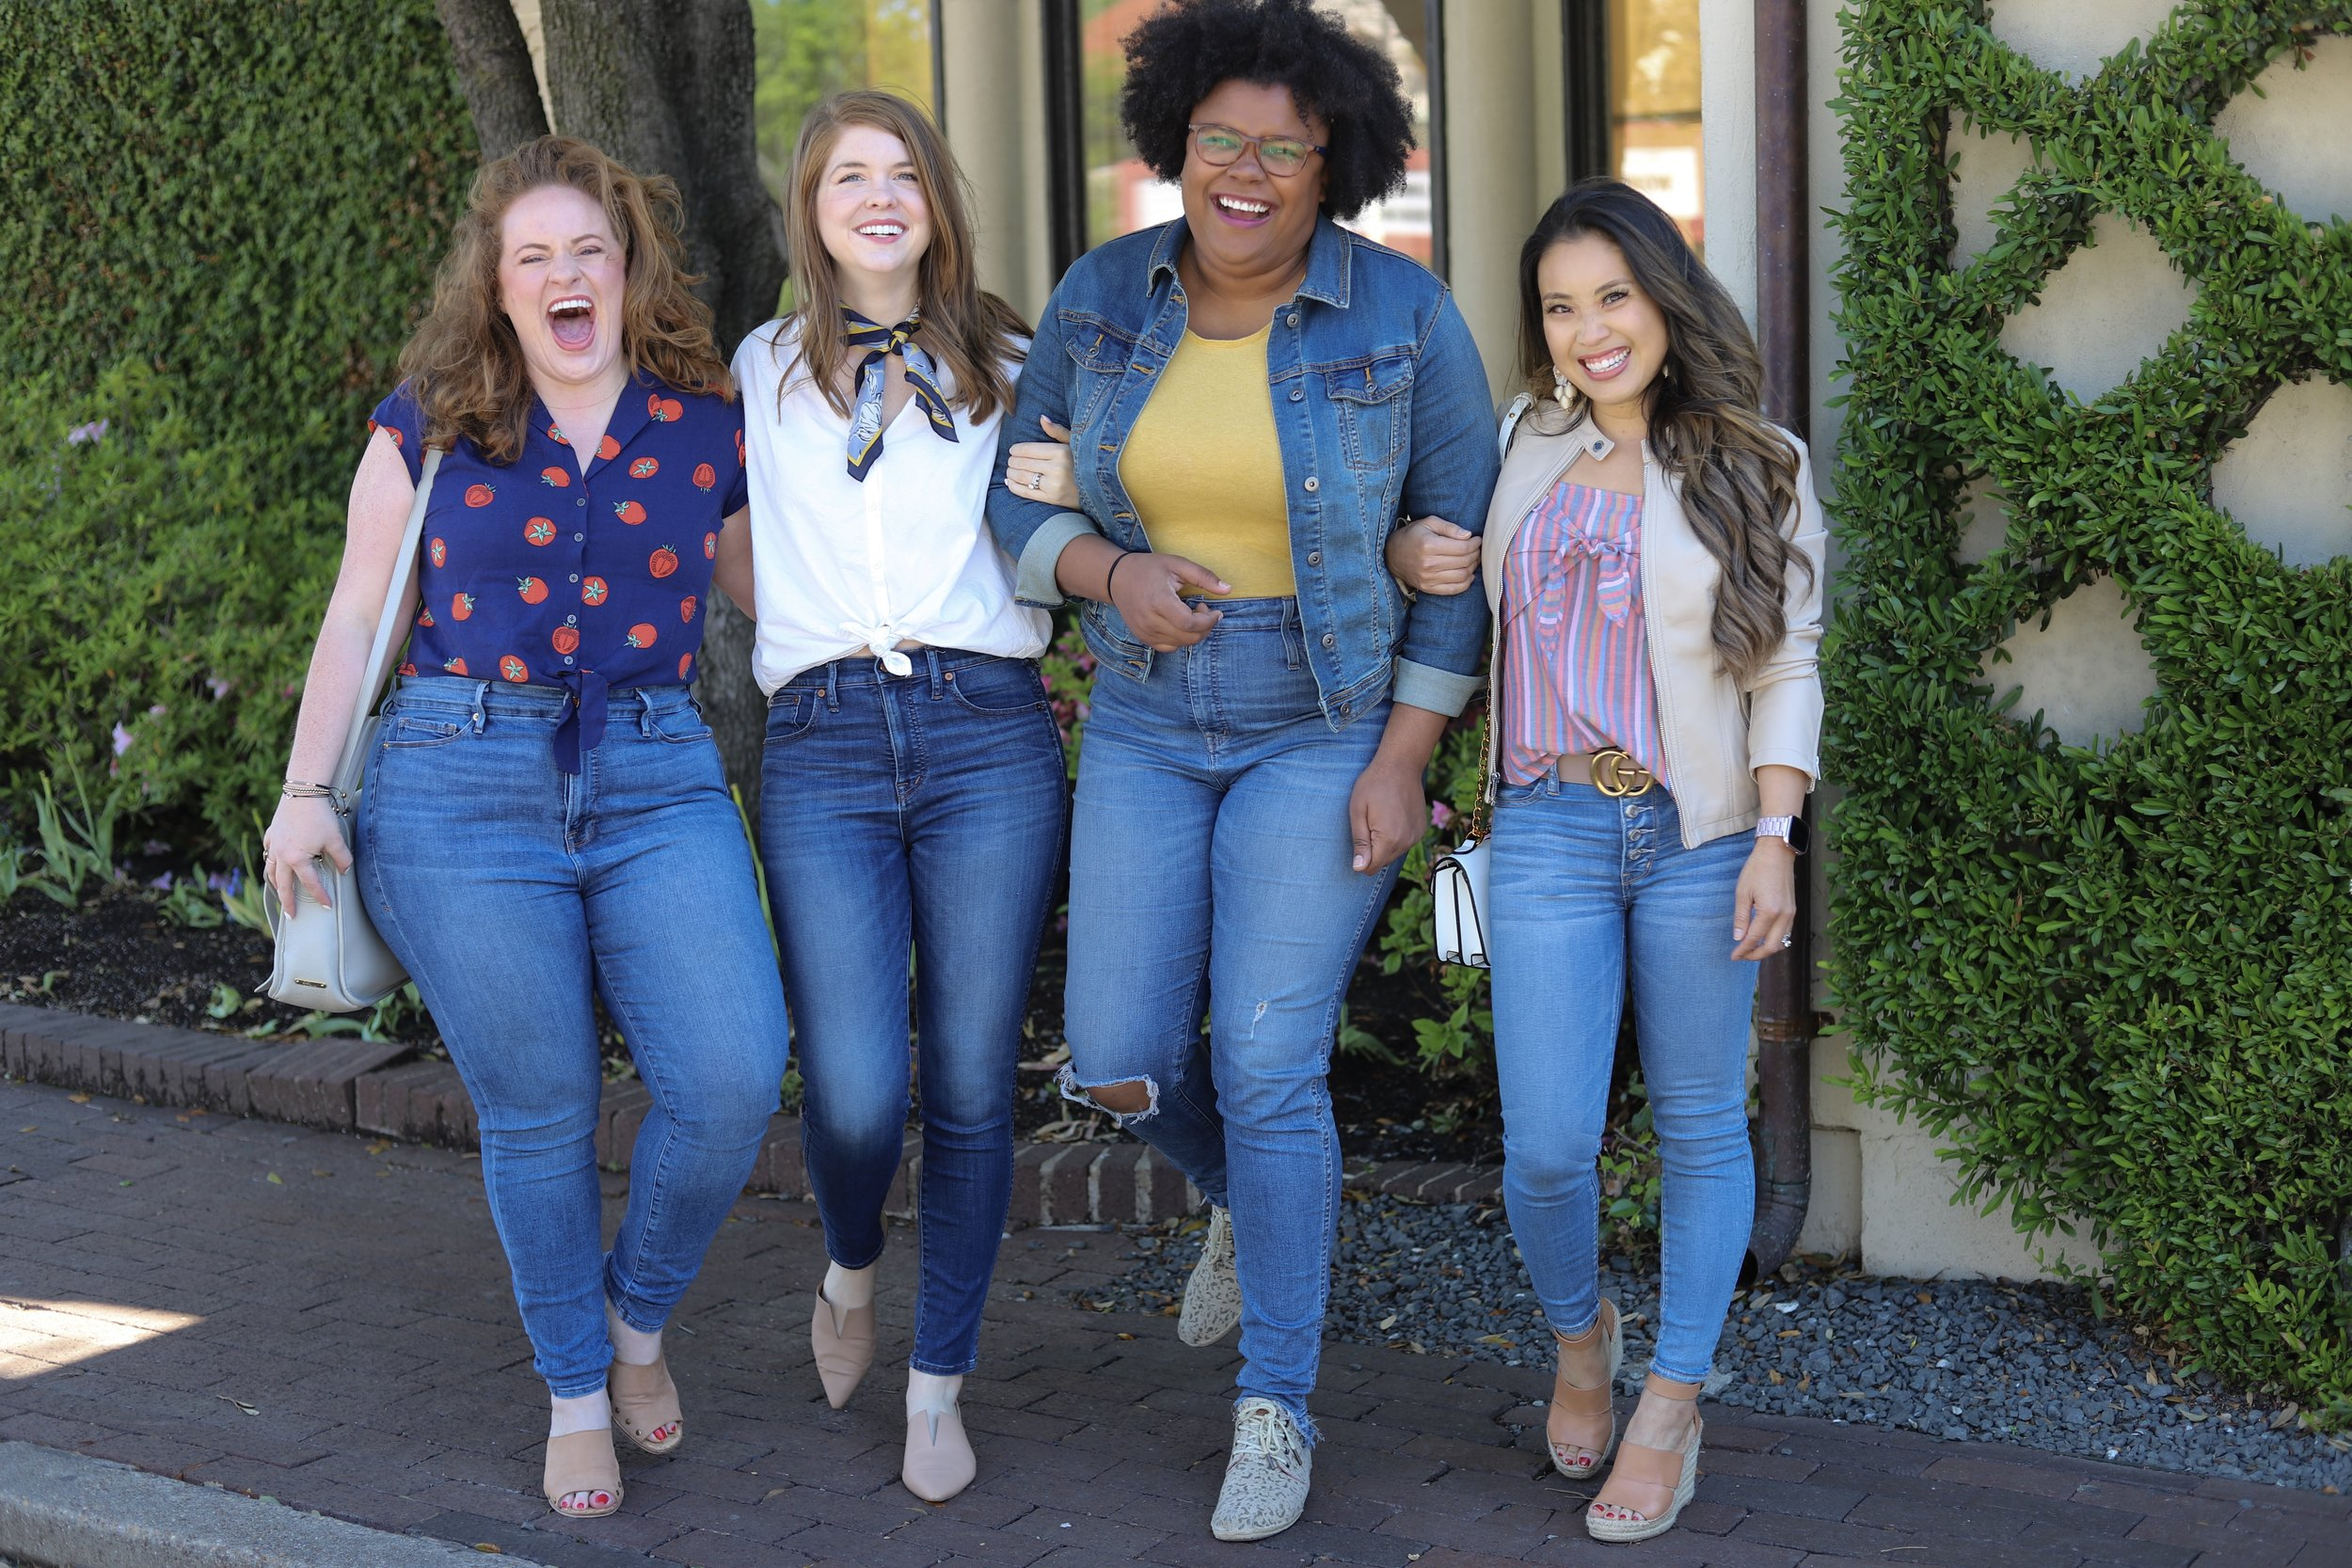 style for every body, petite, plus size, curvy, short, tall, jeans, madewell, good american, american eagle, jeans for every body type, body positivity, lments of style, the healthy curve, the ginger marie blog, cute and little, dallas bloggers